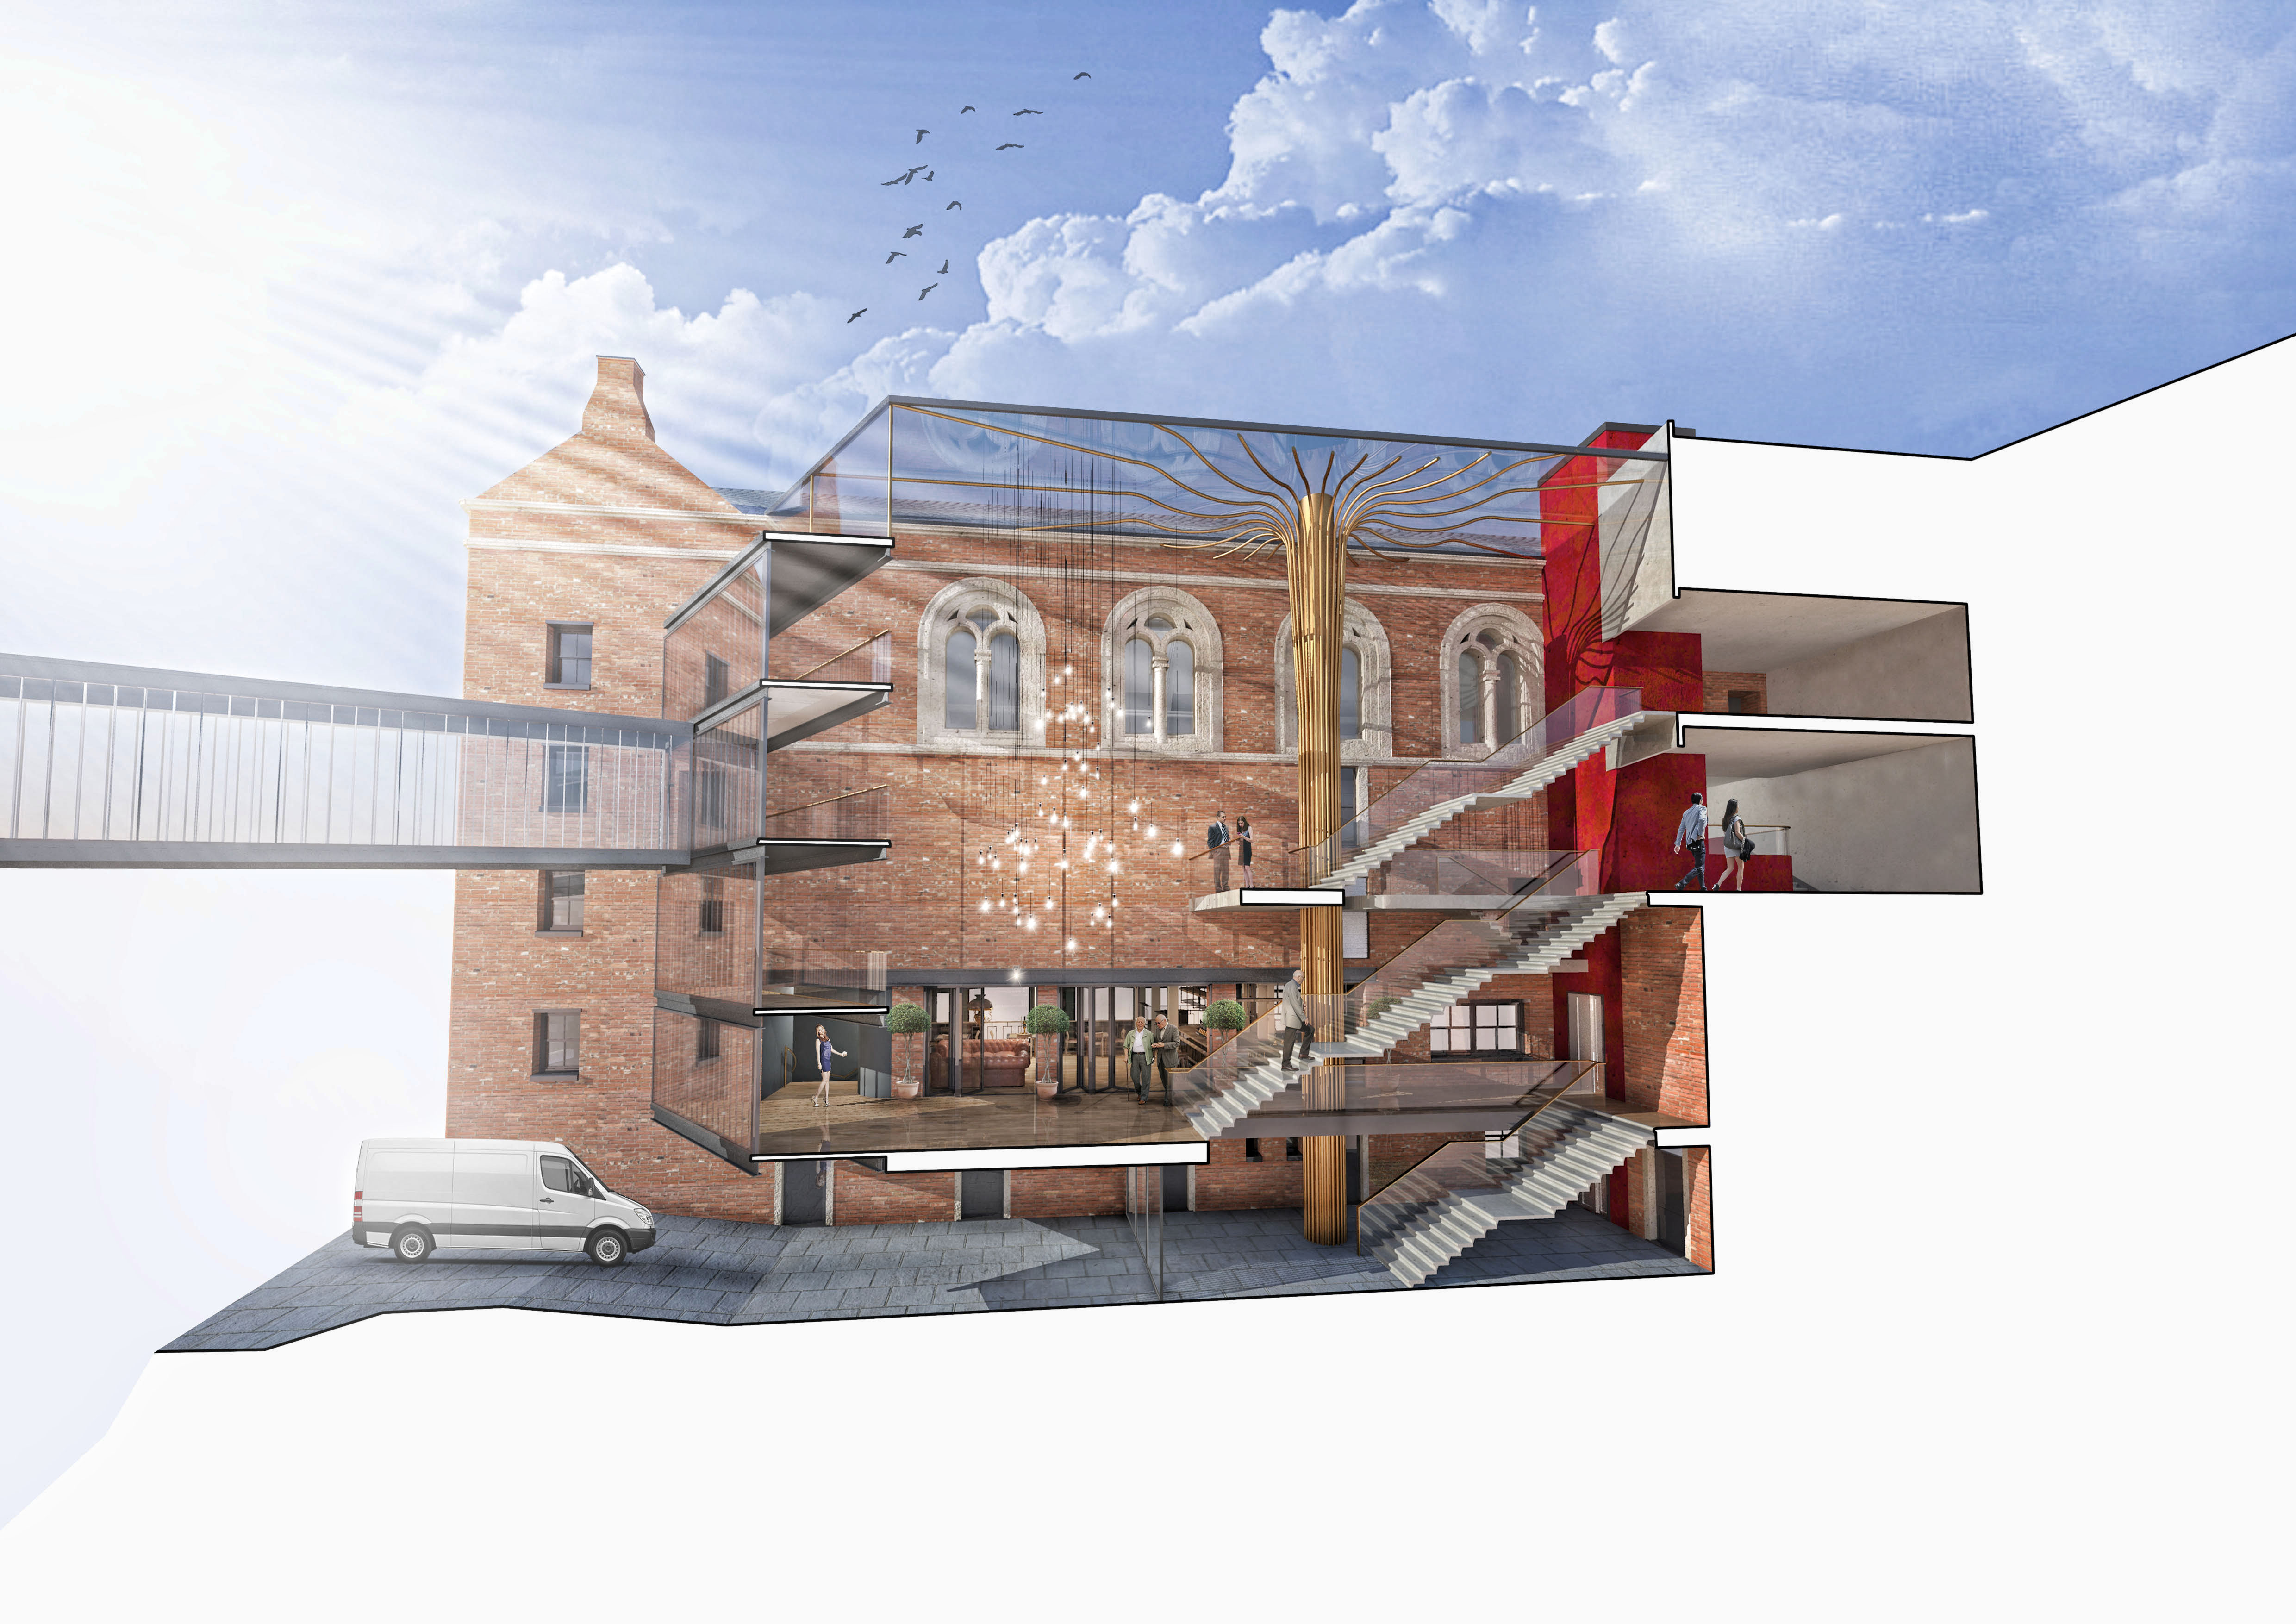 NEWS: ambitious redevelopment project proposed by Opera North